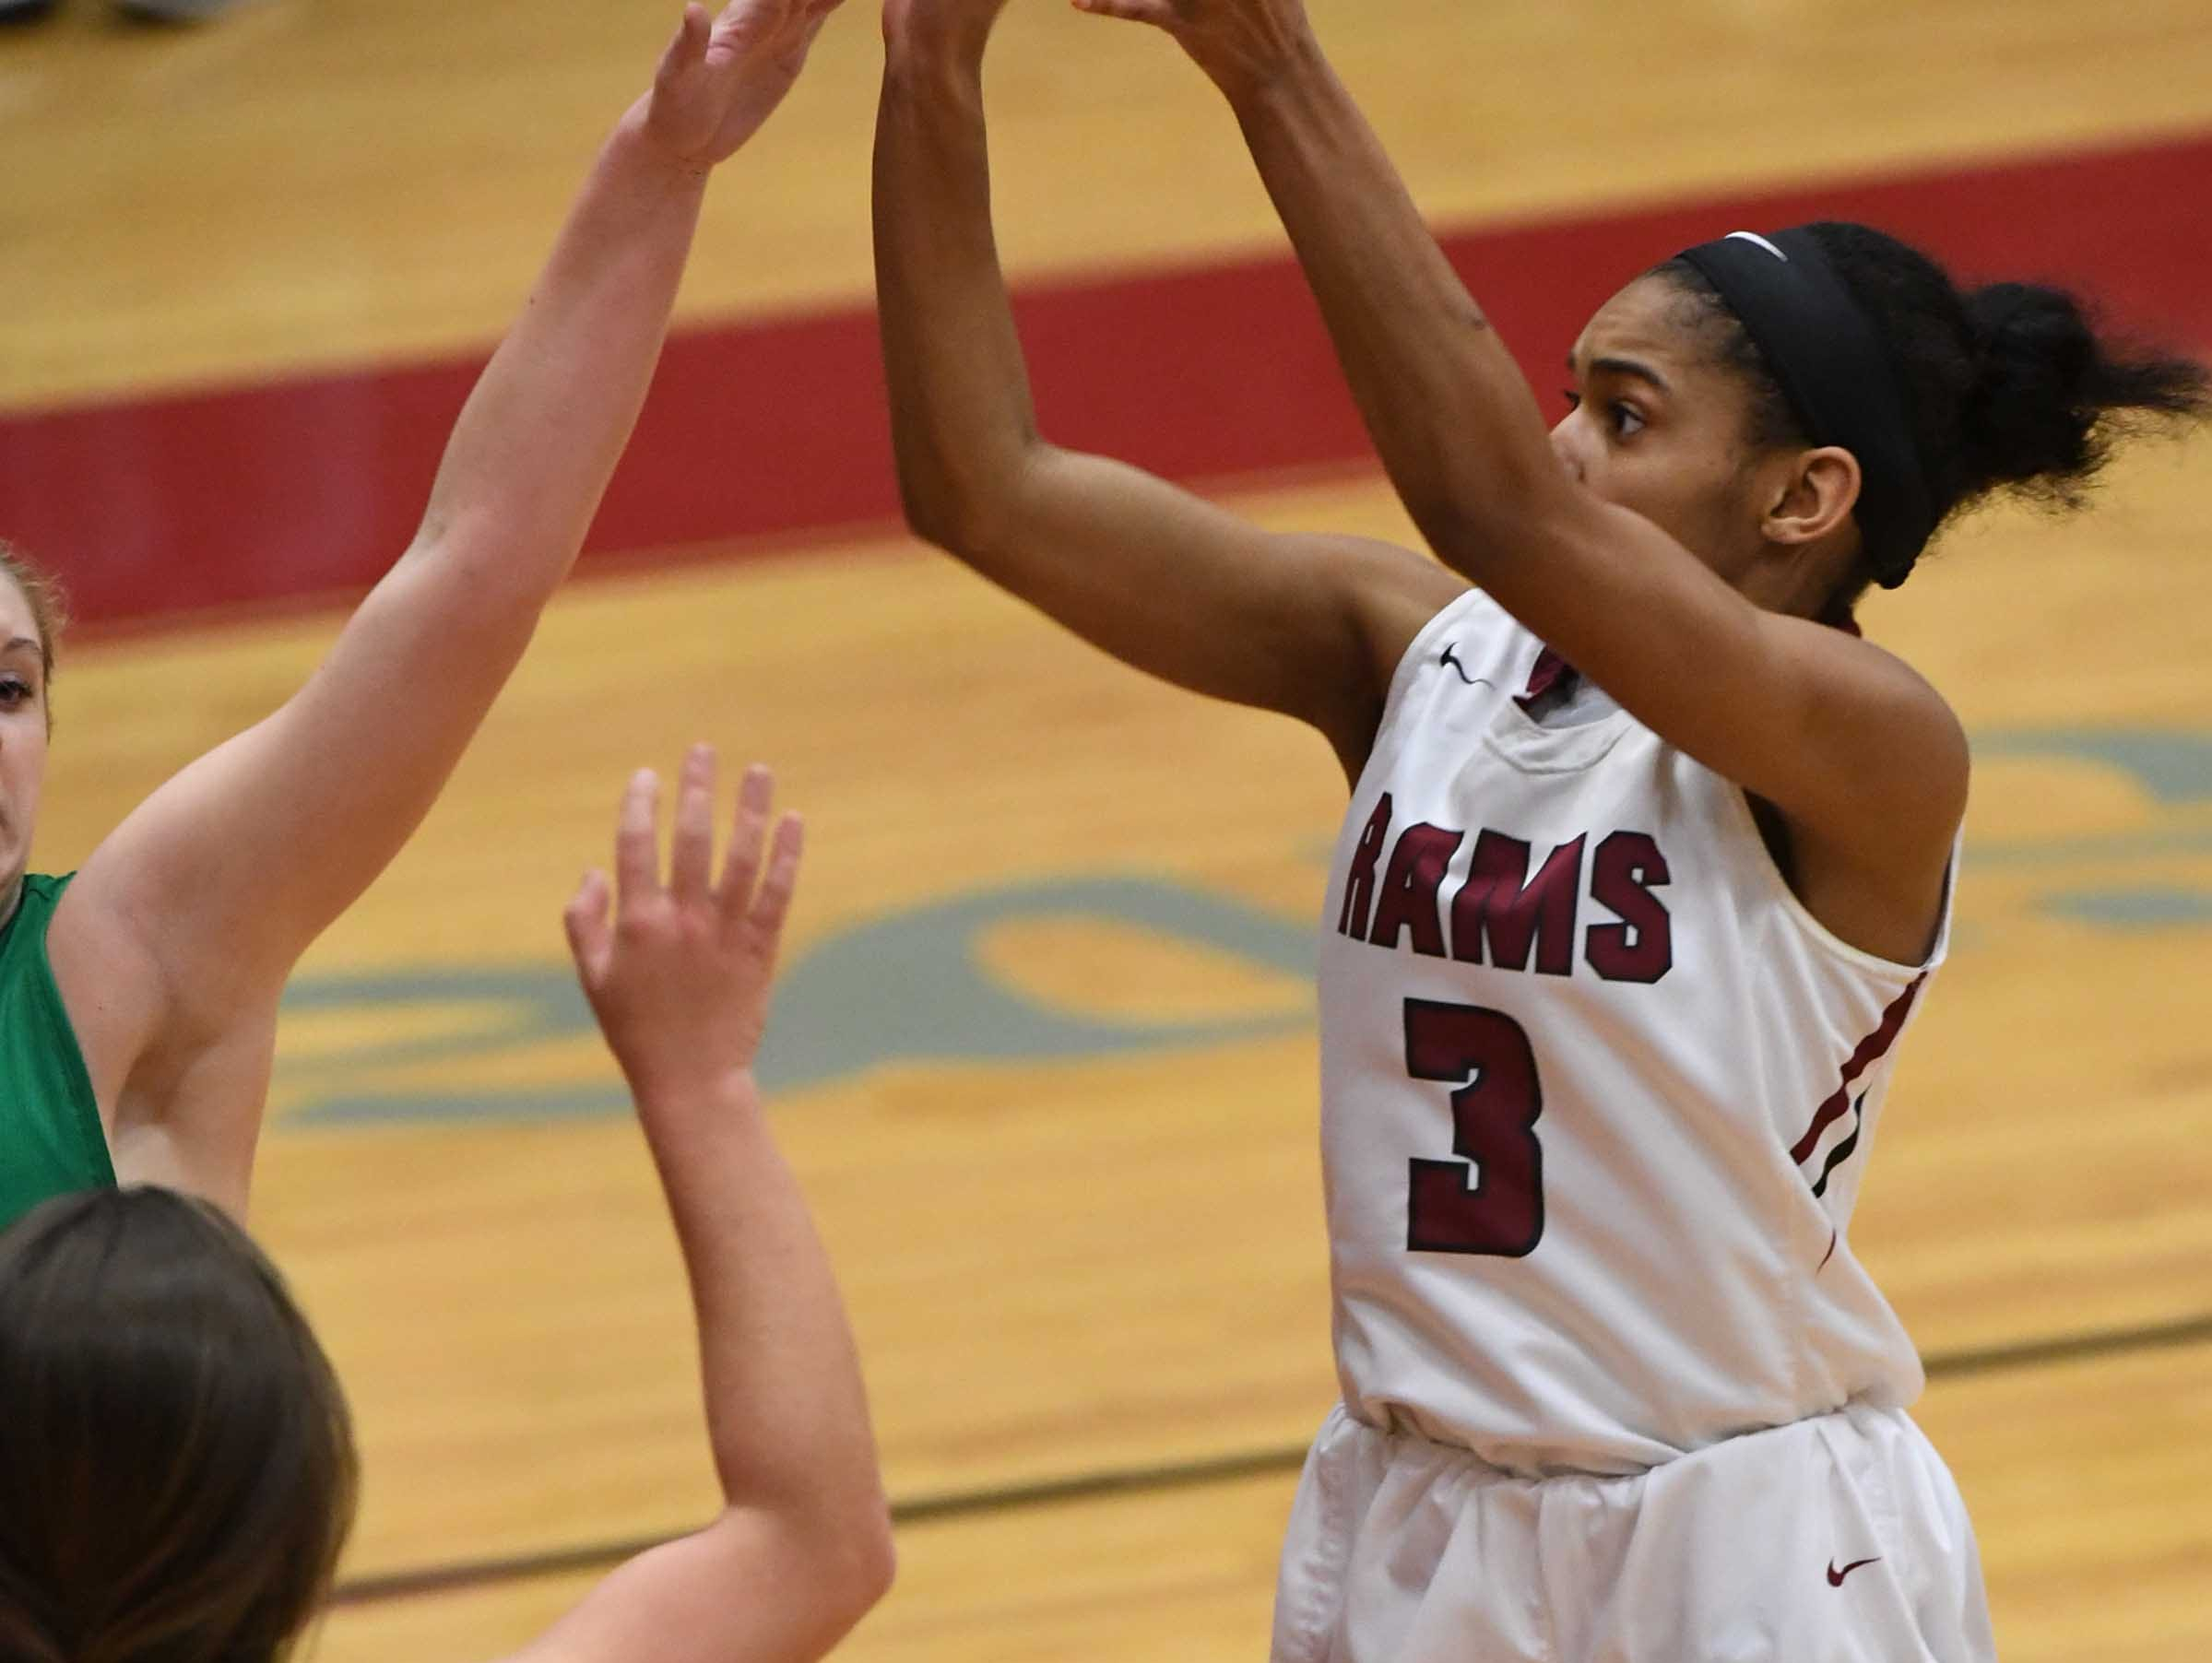 Westside freshman Anaiyah Harper(3) shoots during the third quarter at Westside High School in Anderson on Friday.